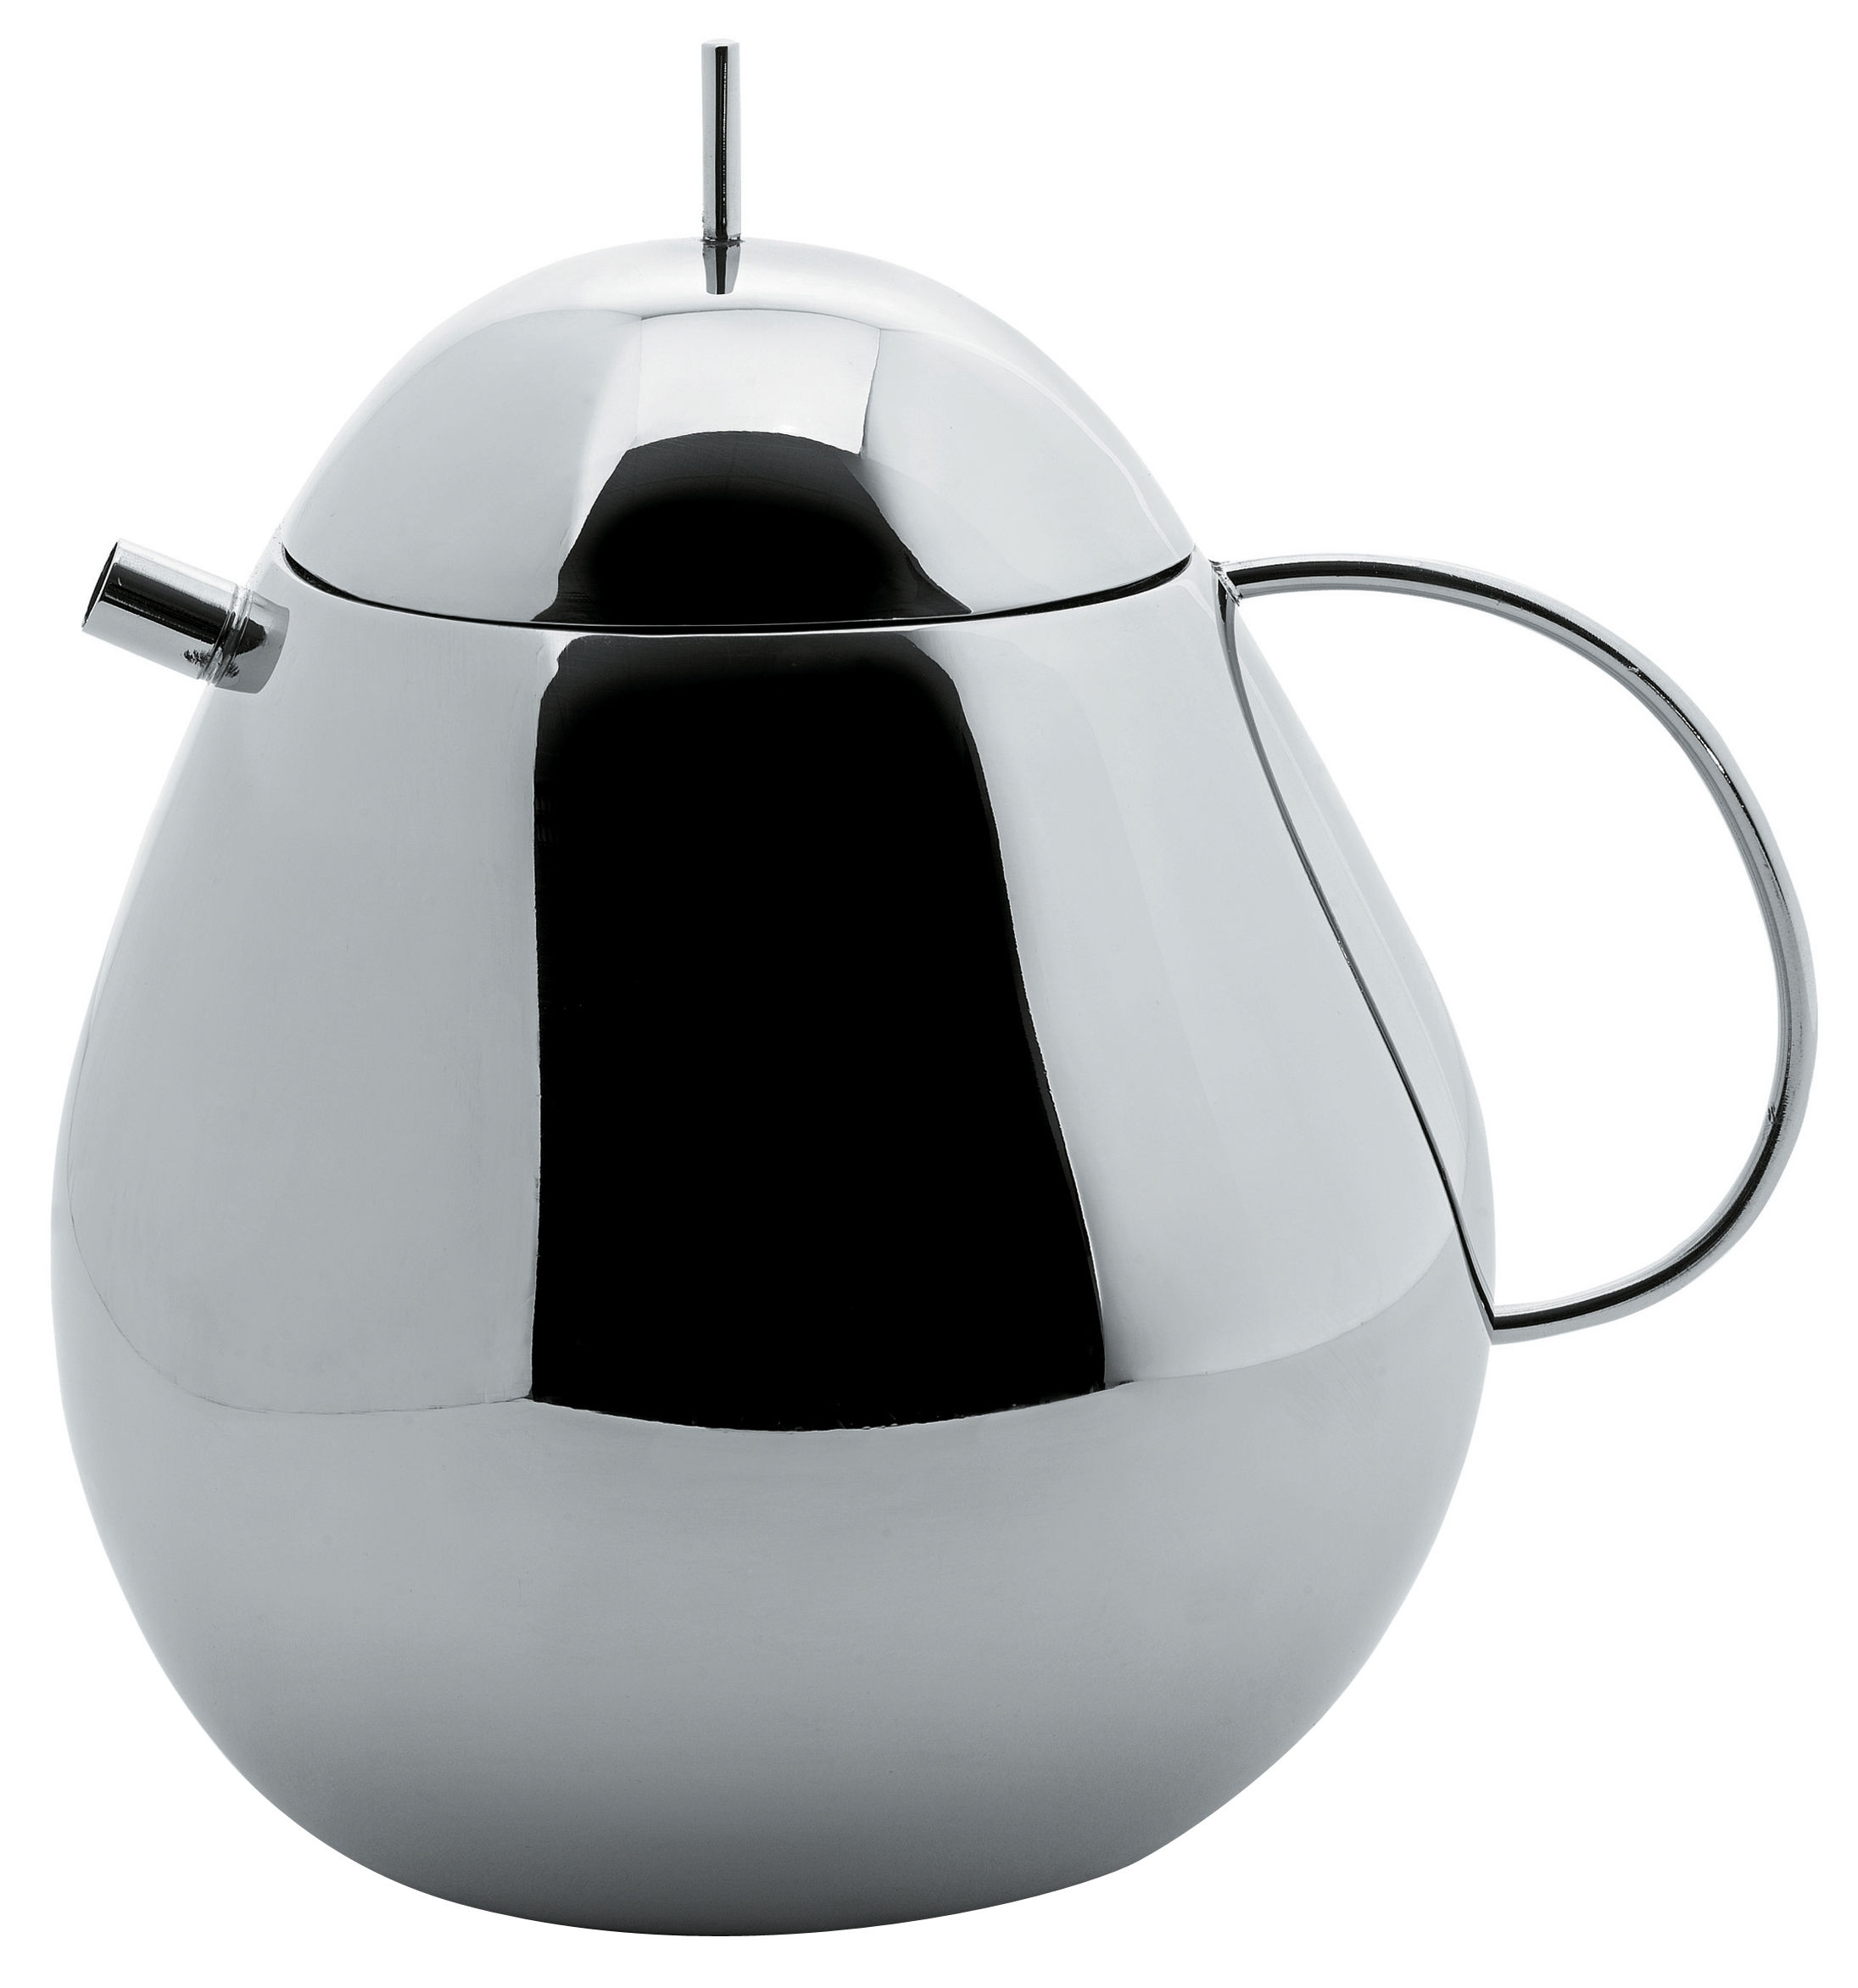 Tableware - Tea & Coffee Accessories - Fruit basket Teapot by Alessi - Steel - Stainless steel